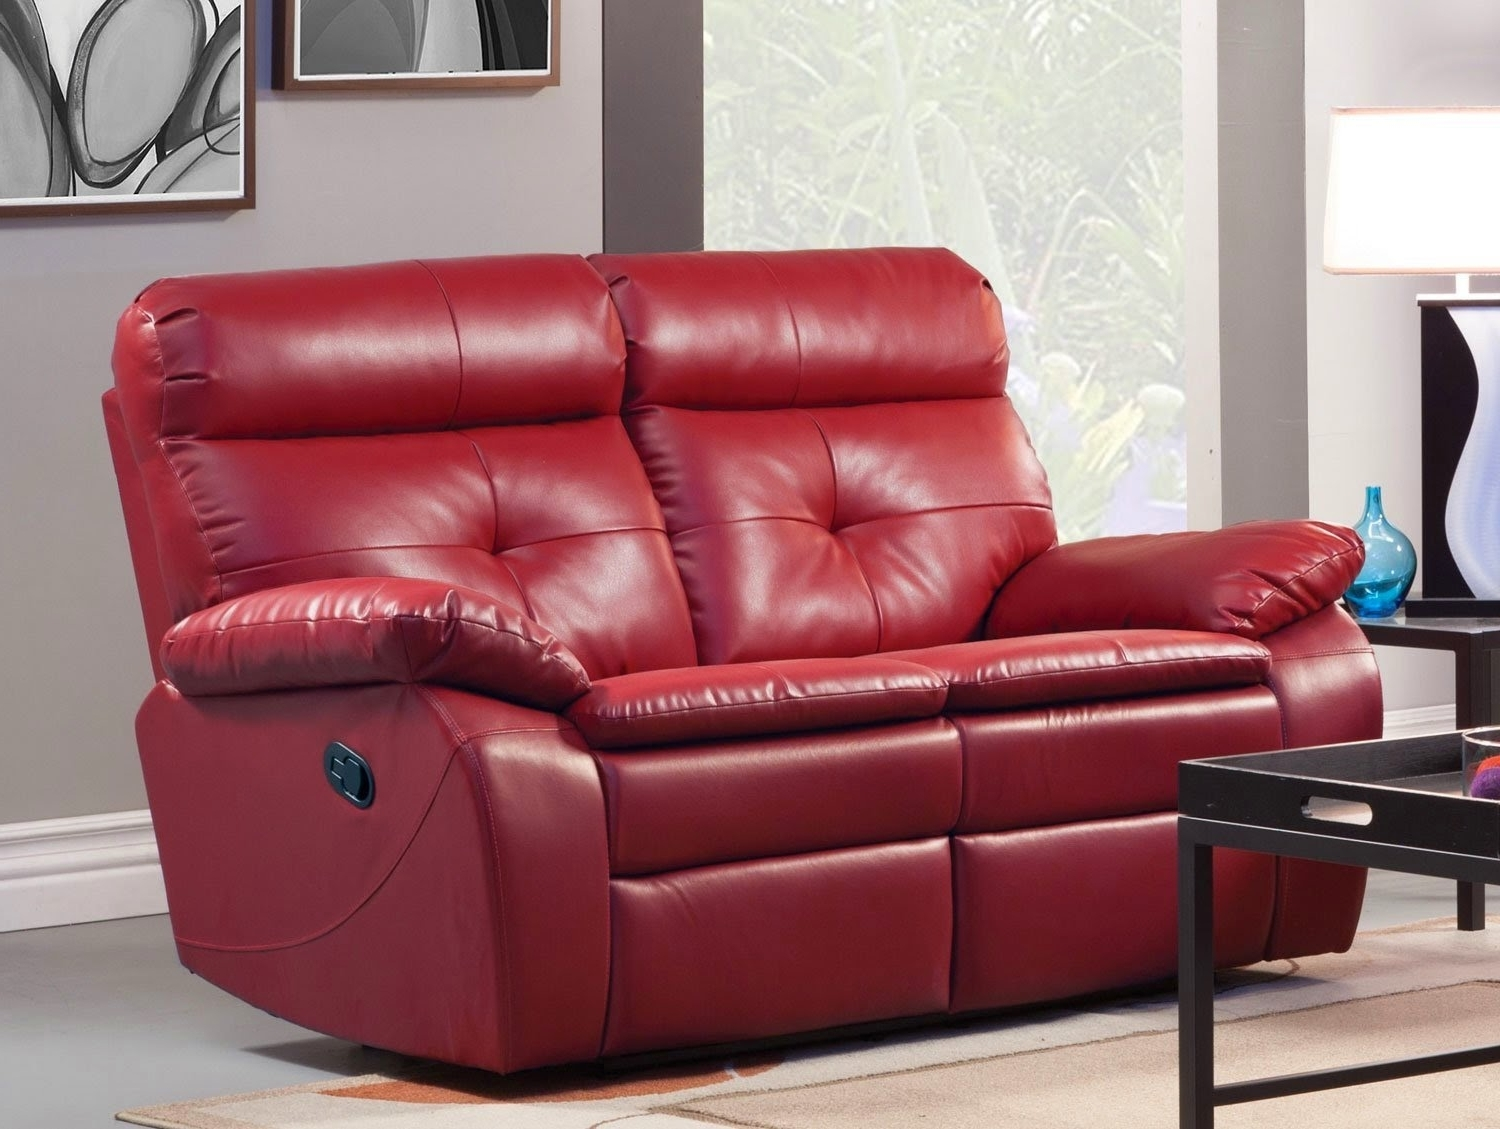 Red Leather Reclining Sofas And Loveseats Intended For Well Known The Best Reclining Sofa Reviews: Red Leather Reclining Sofa And (View 5 of 20)